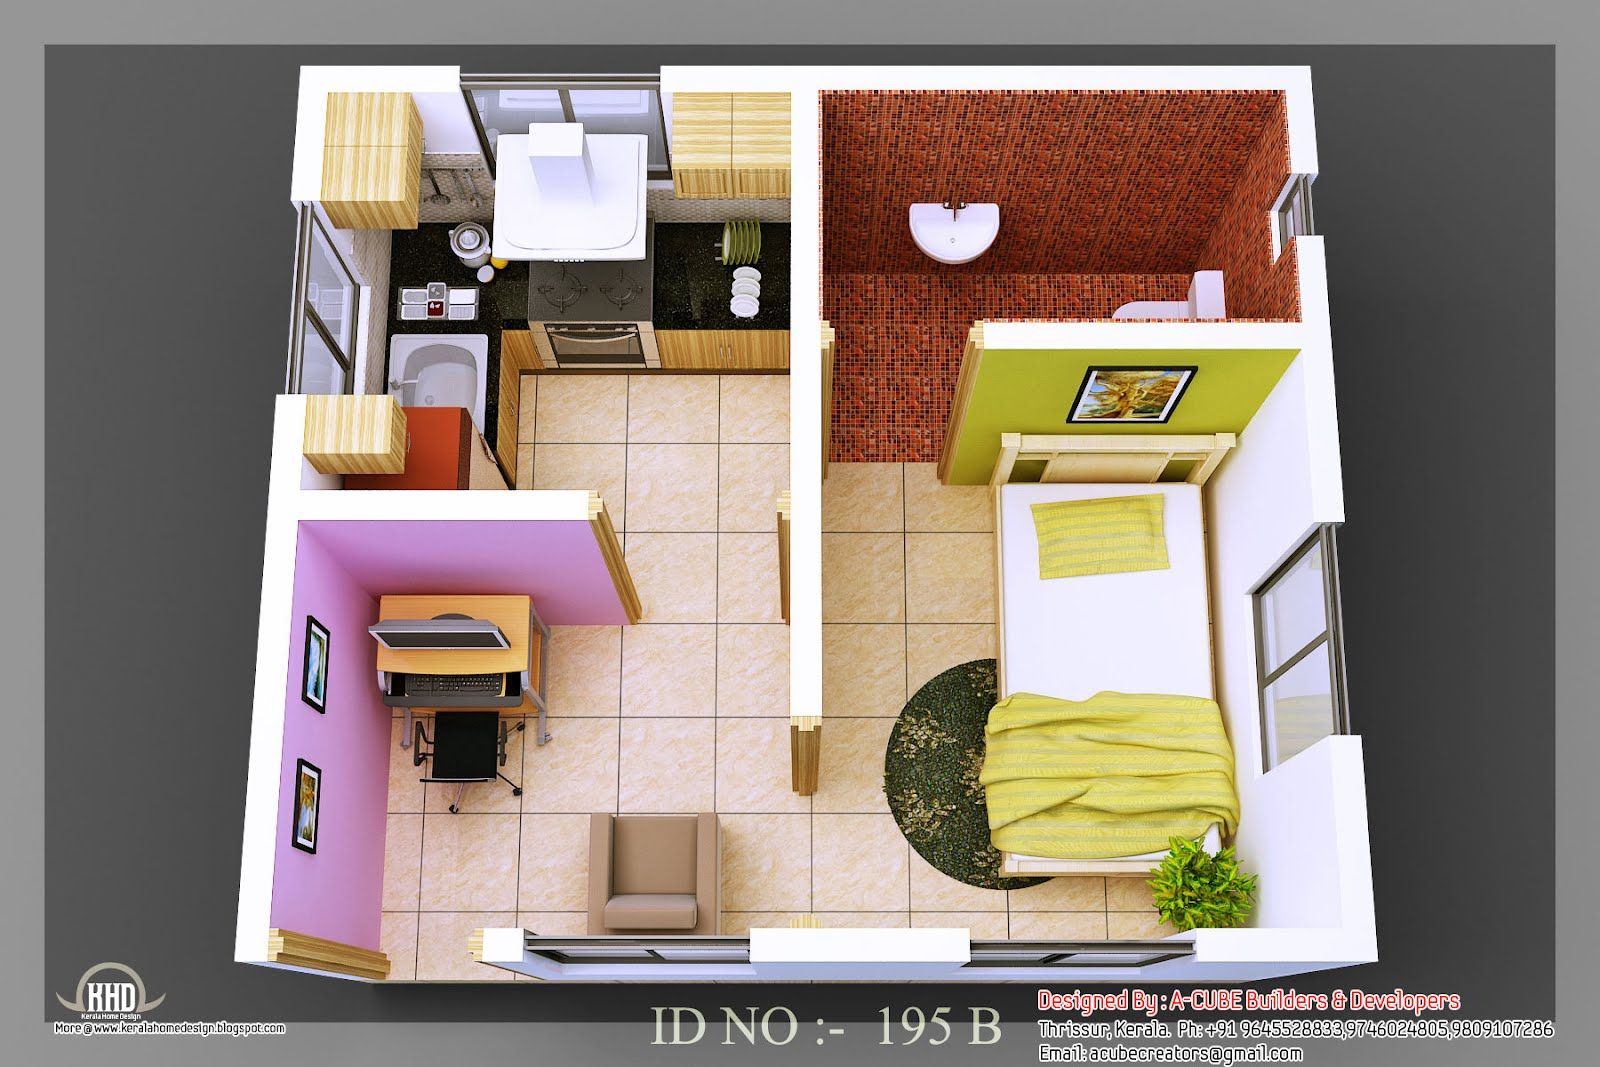 isometric views small house plans kerala home design floor information isometric small house plans - Design For Small House